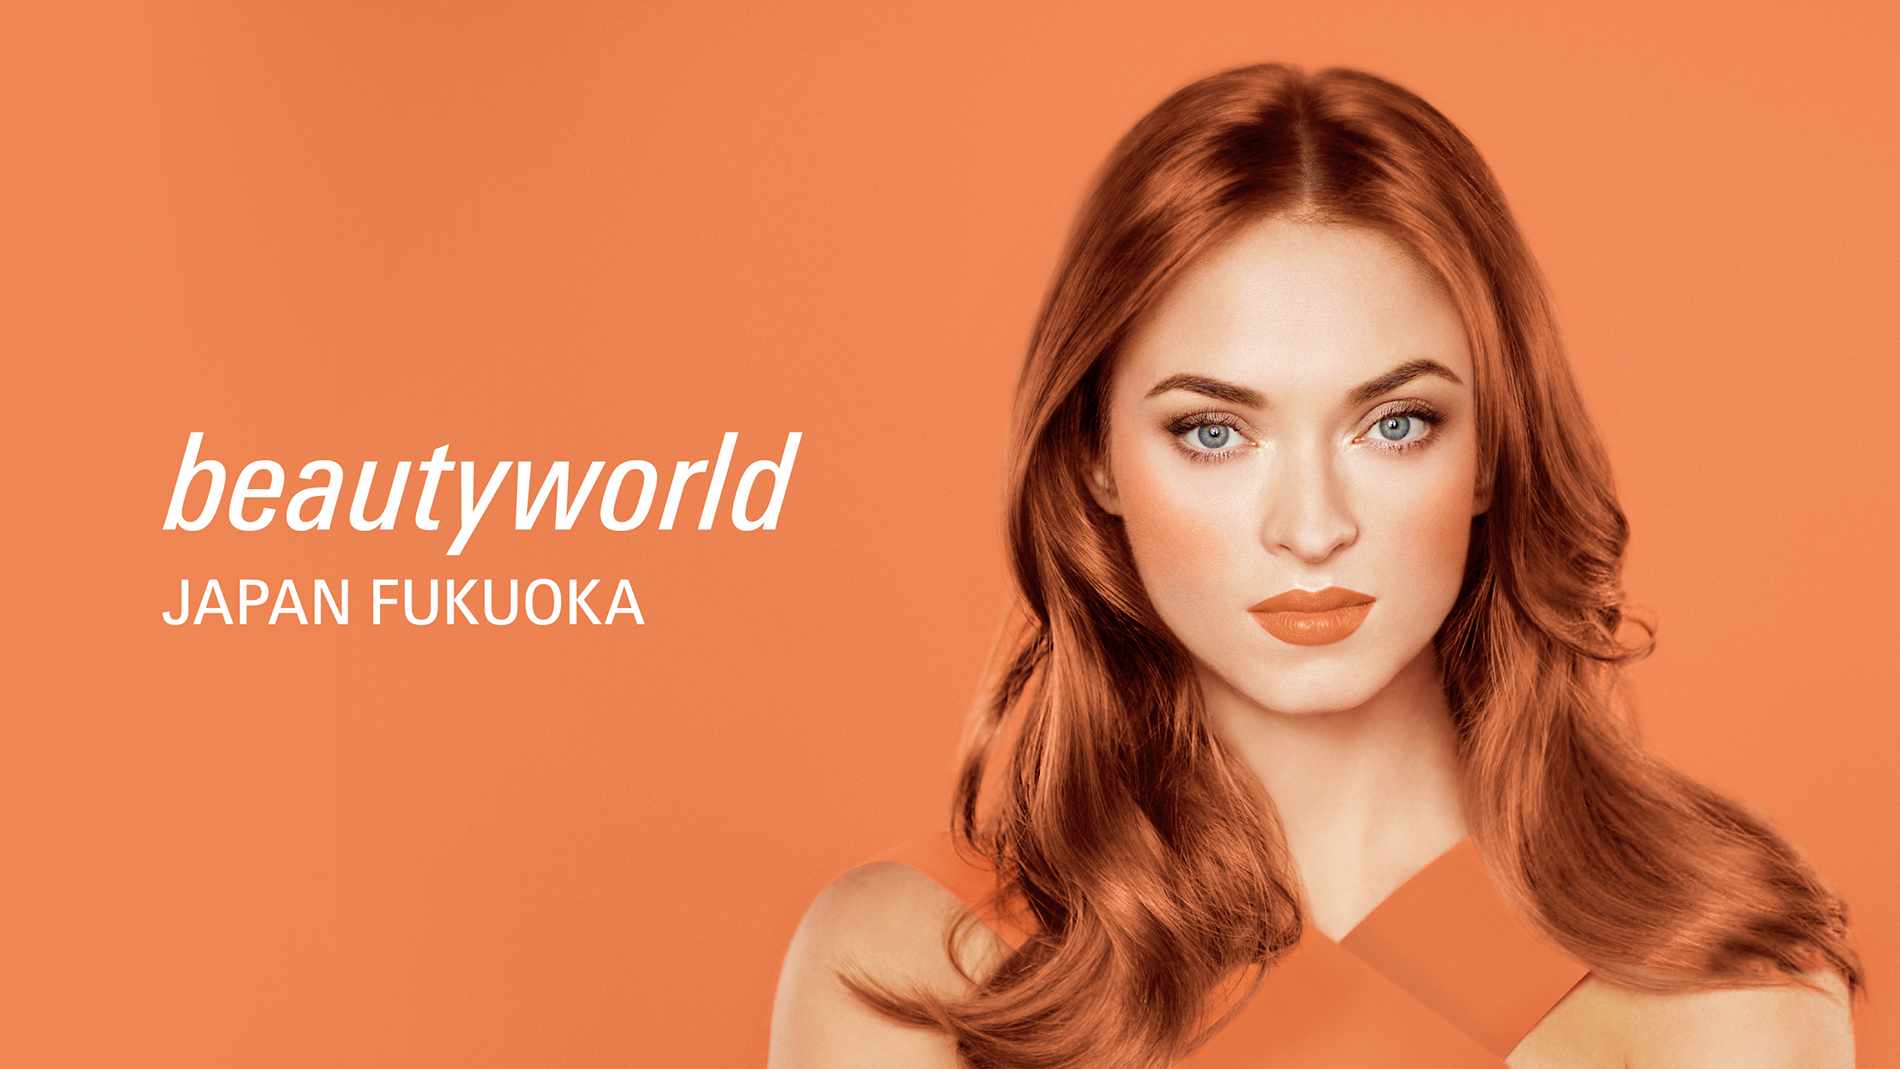 Beautyworld Japan Fukuoka Keyvisual 2021